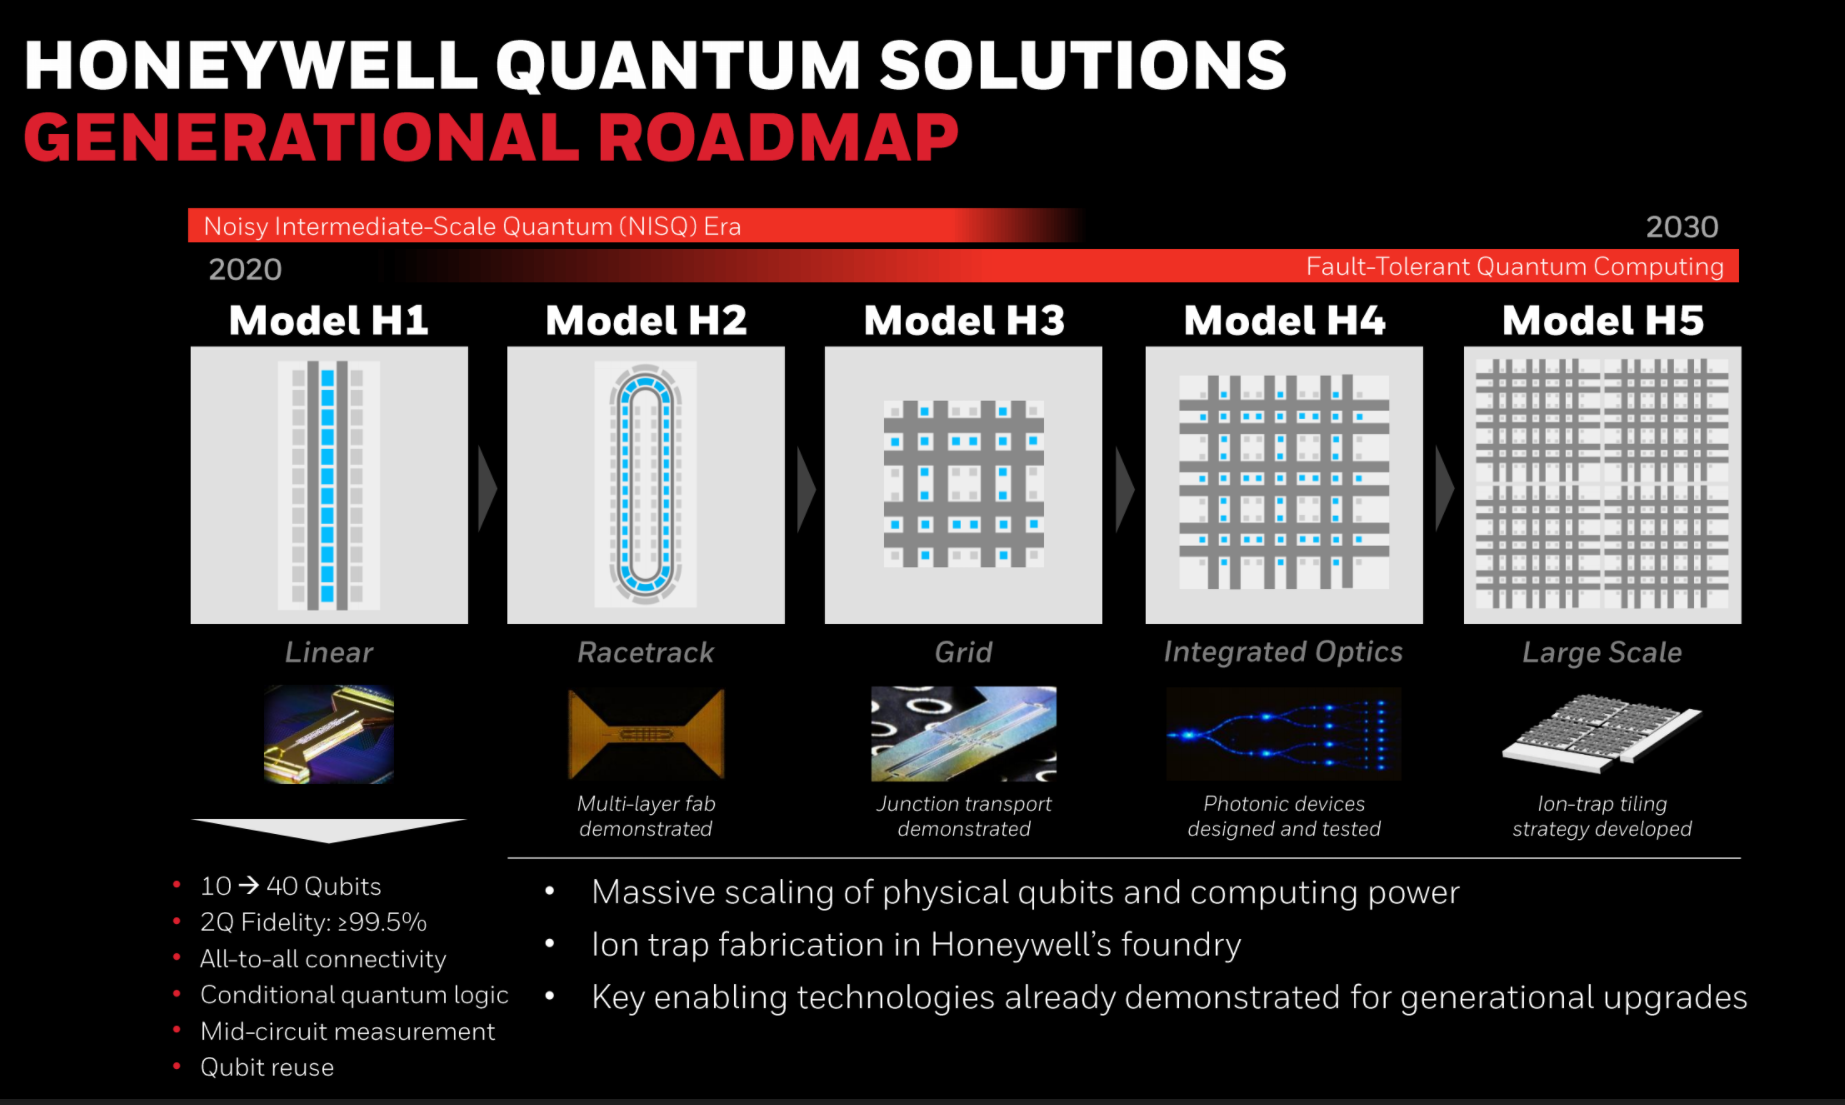 Honeywell announces its H1 quantum computer with 10 qubits